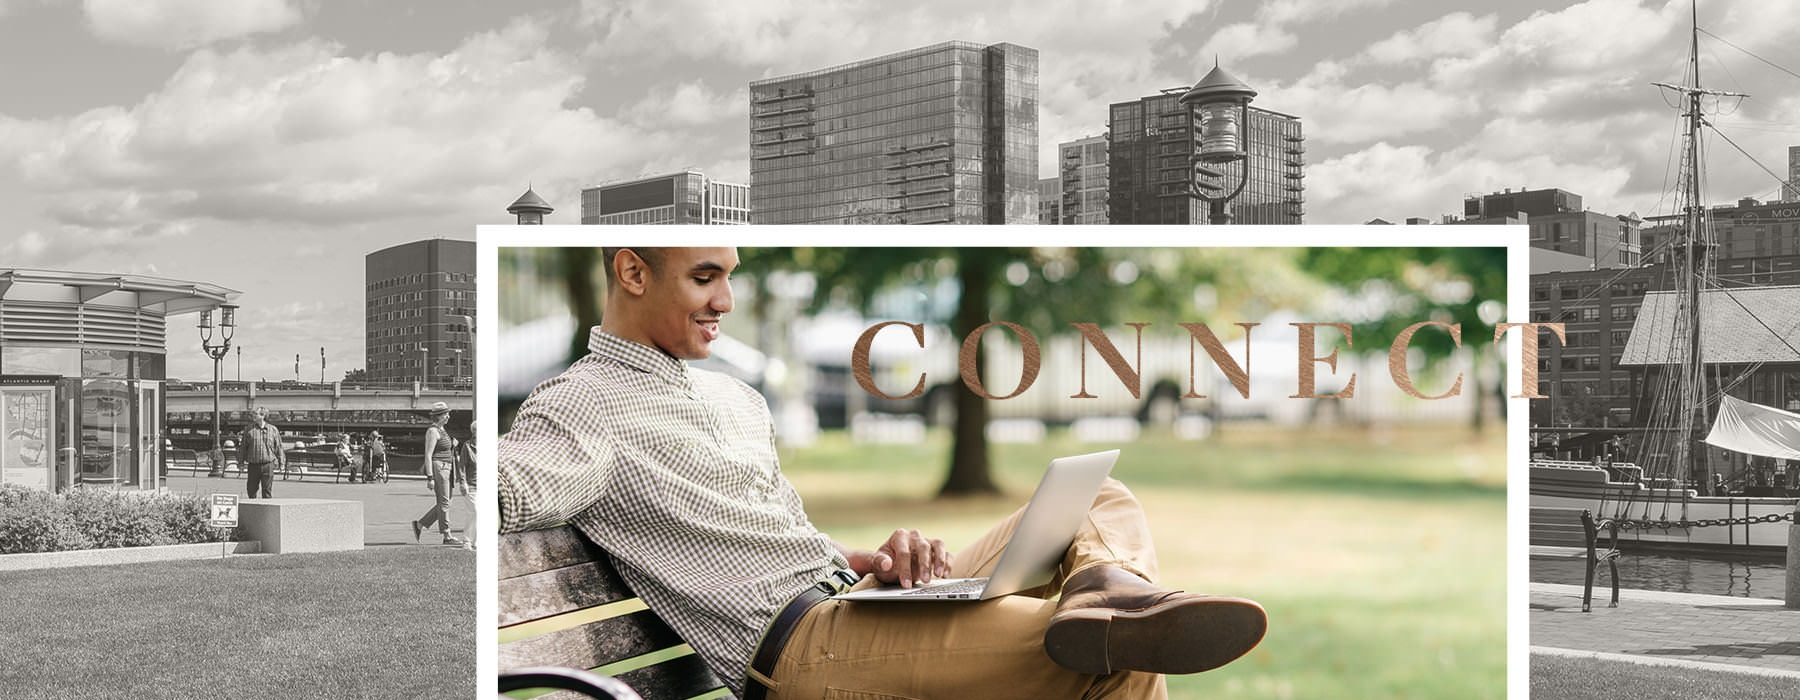 collage of man sitting on park bench looking at his laptop with secondary image of Atlantic Wharf Waterfront in the background